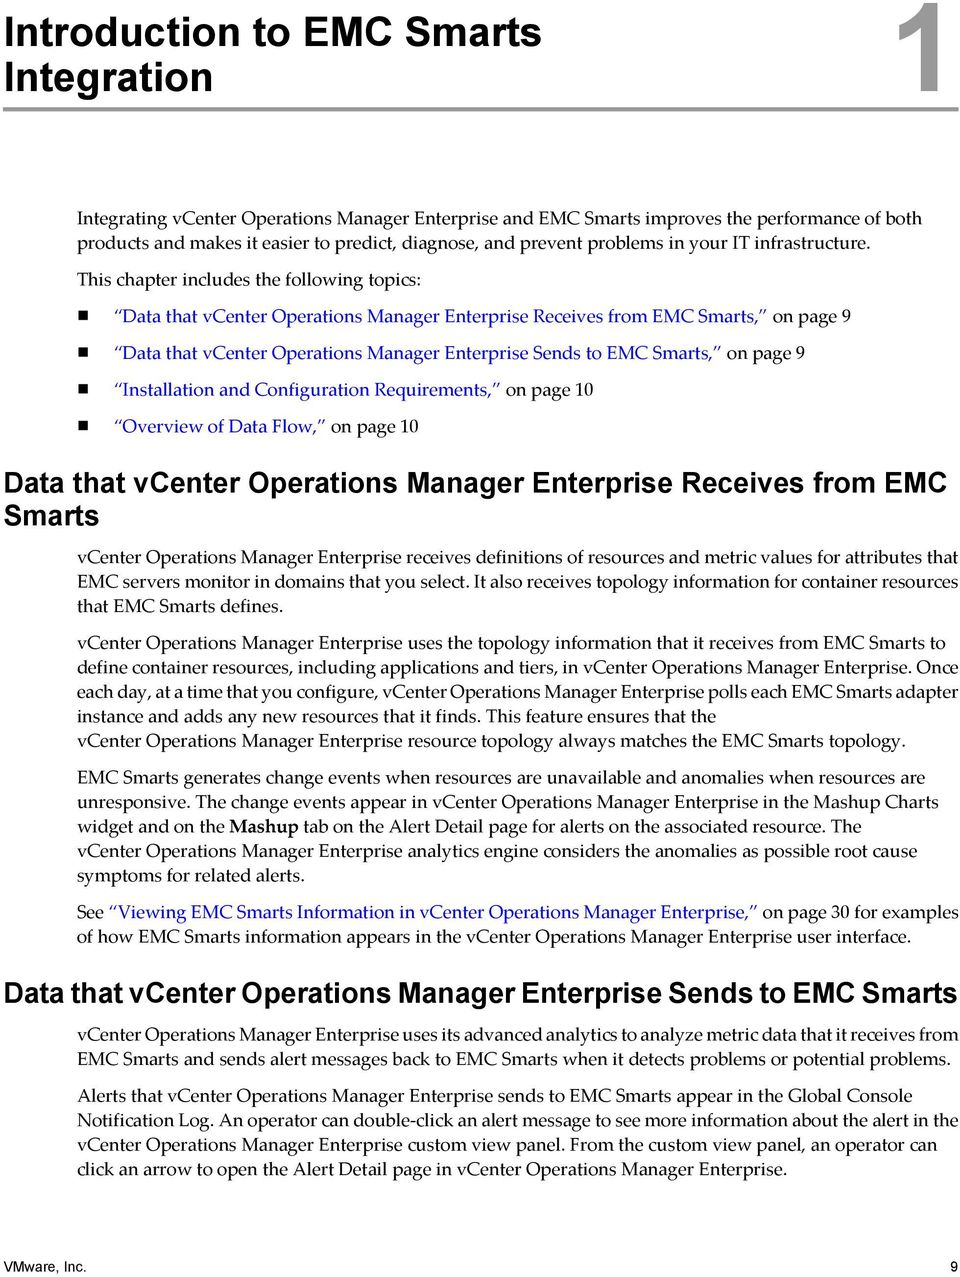 This chapter includes the following topics: Data that vcenter Operations Manager Enterprise Receives from EMC Smarts, on page 9 Data that vcenter Operations Manager Enterprise Sends to EMC Smarts, on